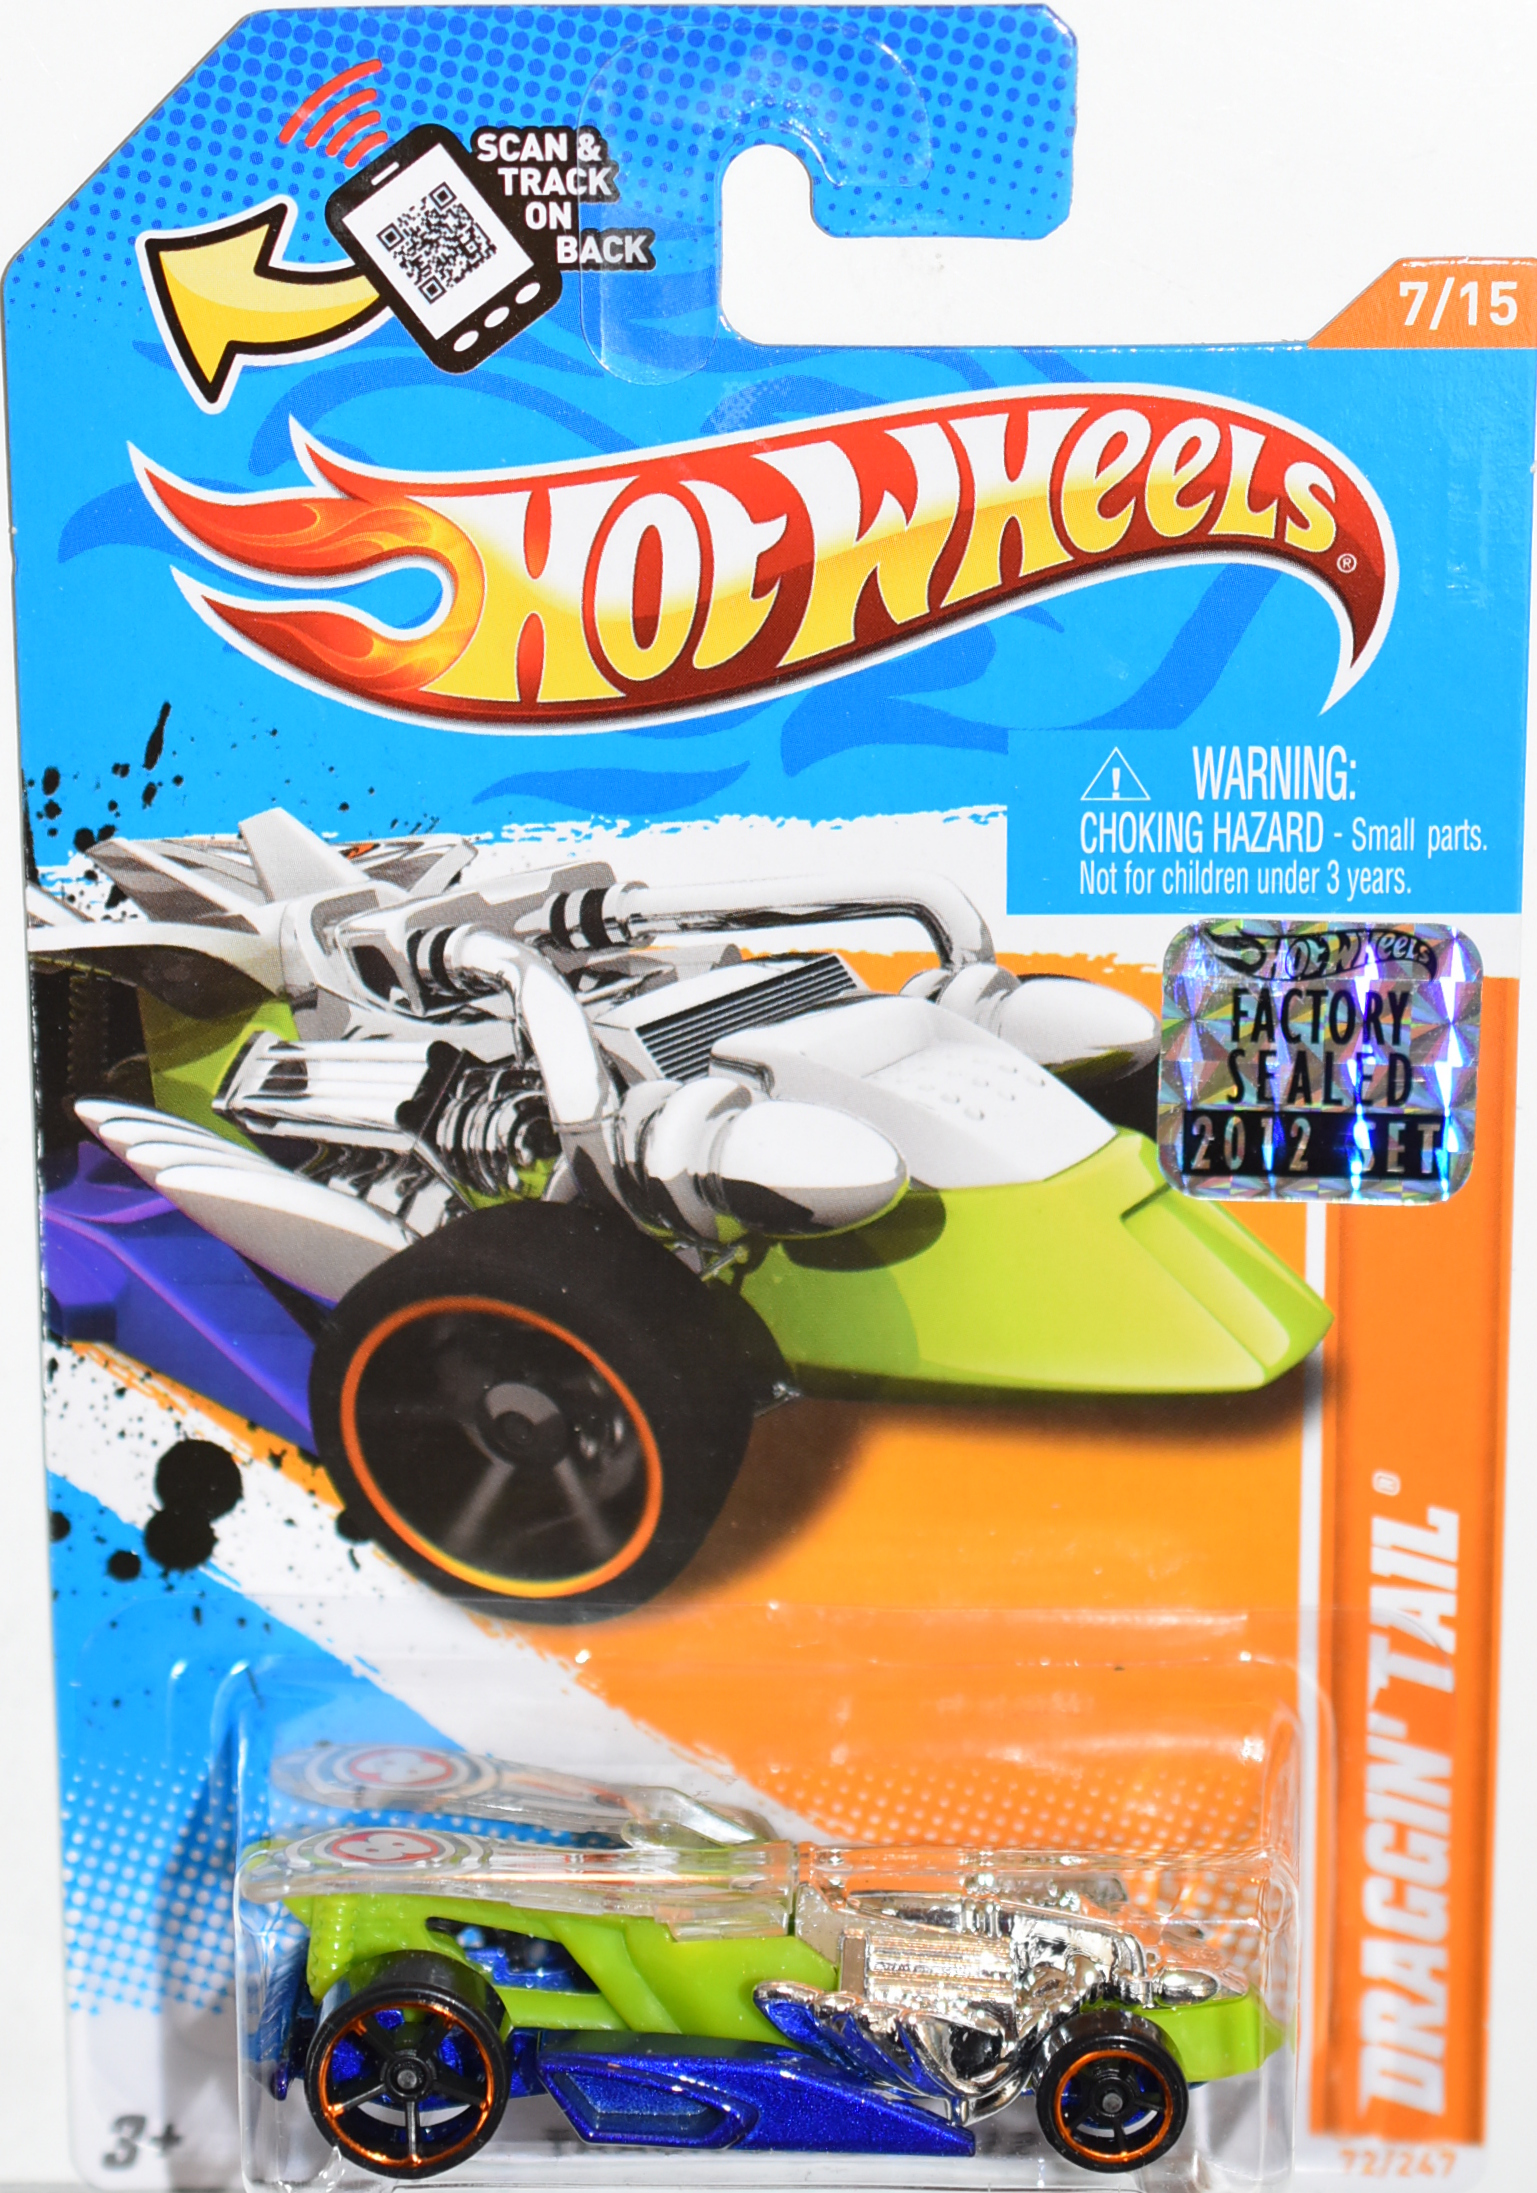 HOT WHEELS 2012 DRAGGIN' TAIL FACTORY SEALED